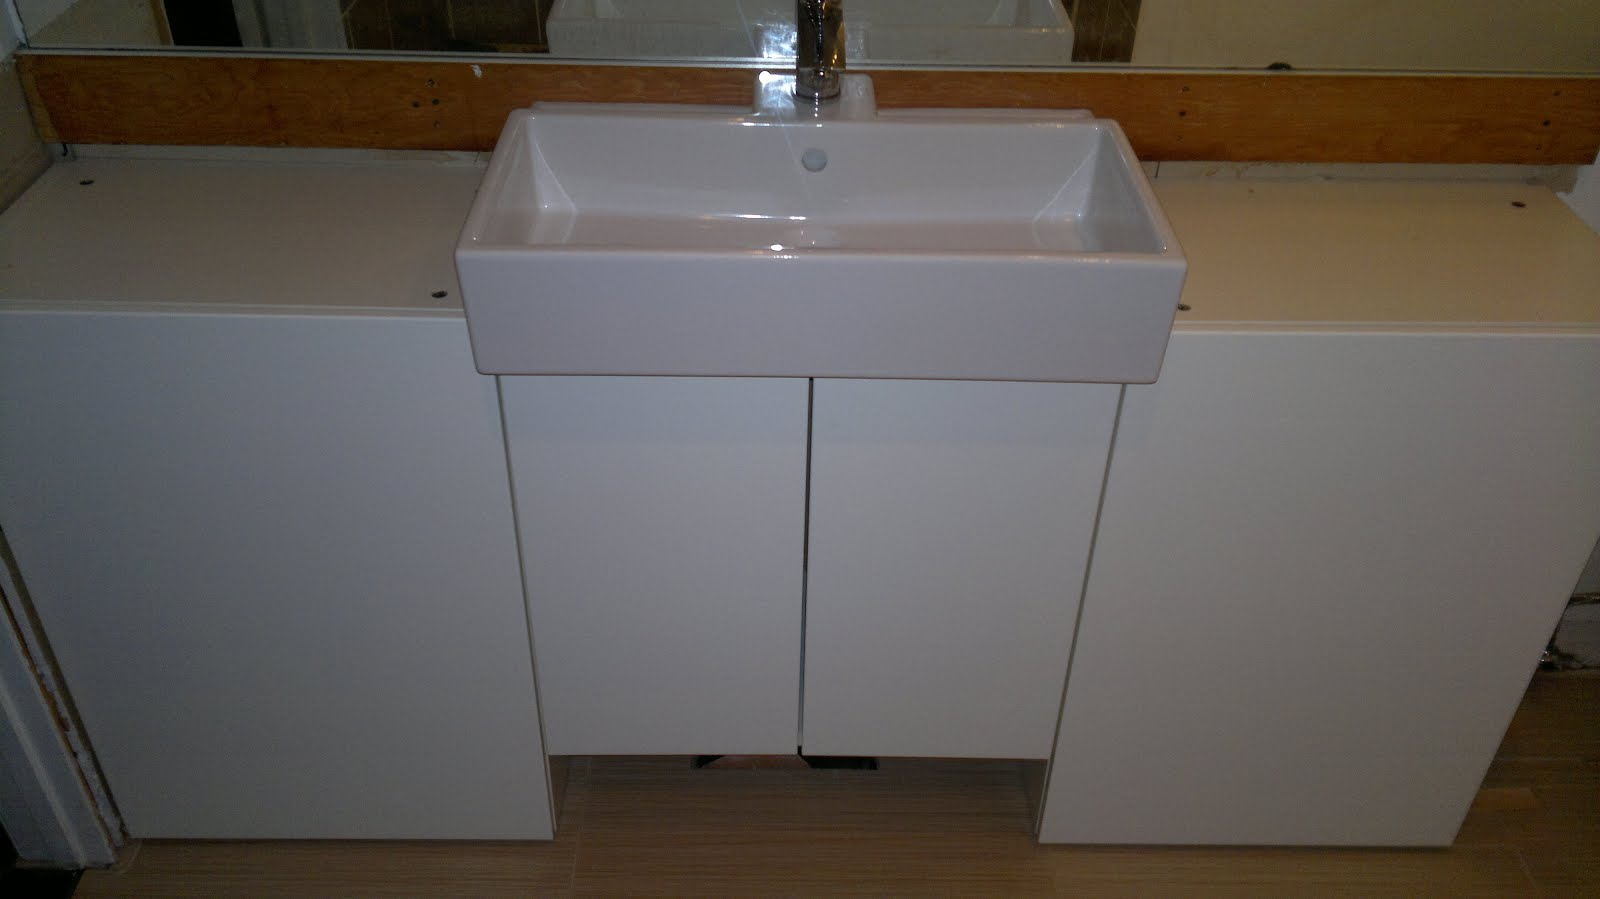 Narrow depth bathroom vanity - 12 Depth Bathroom Vanity